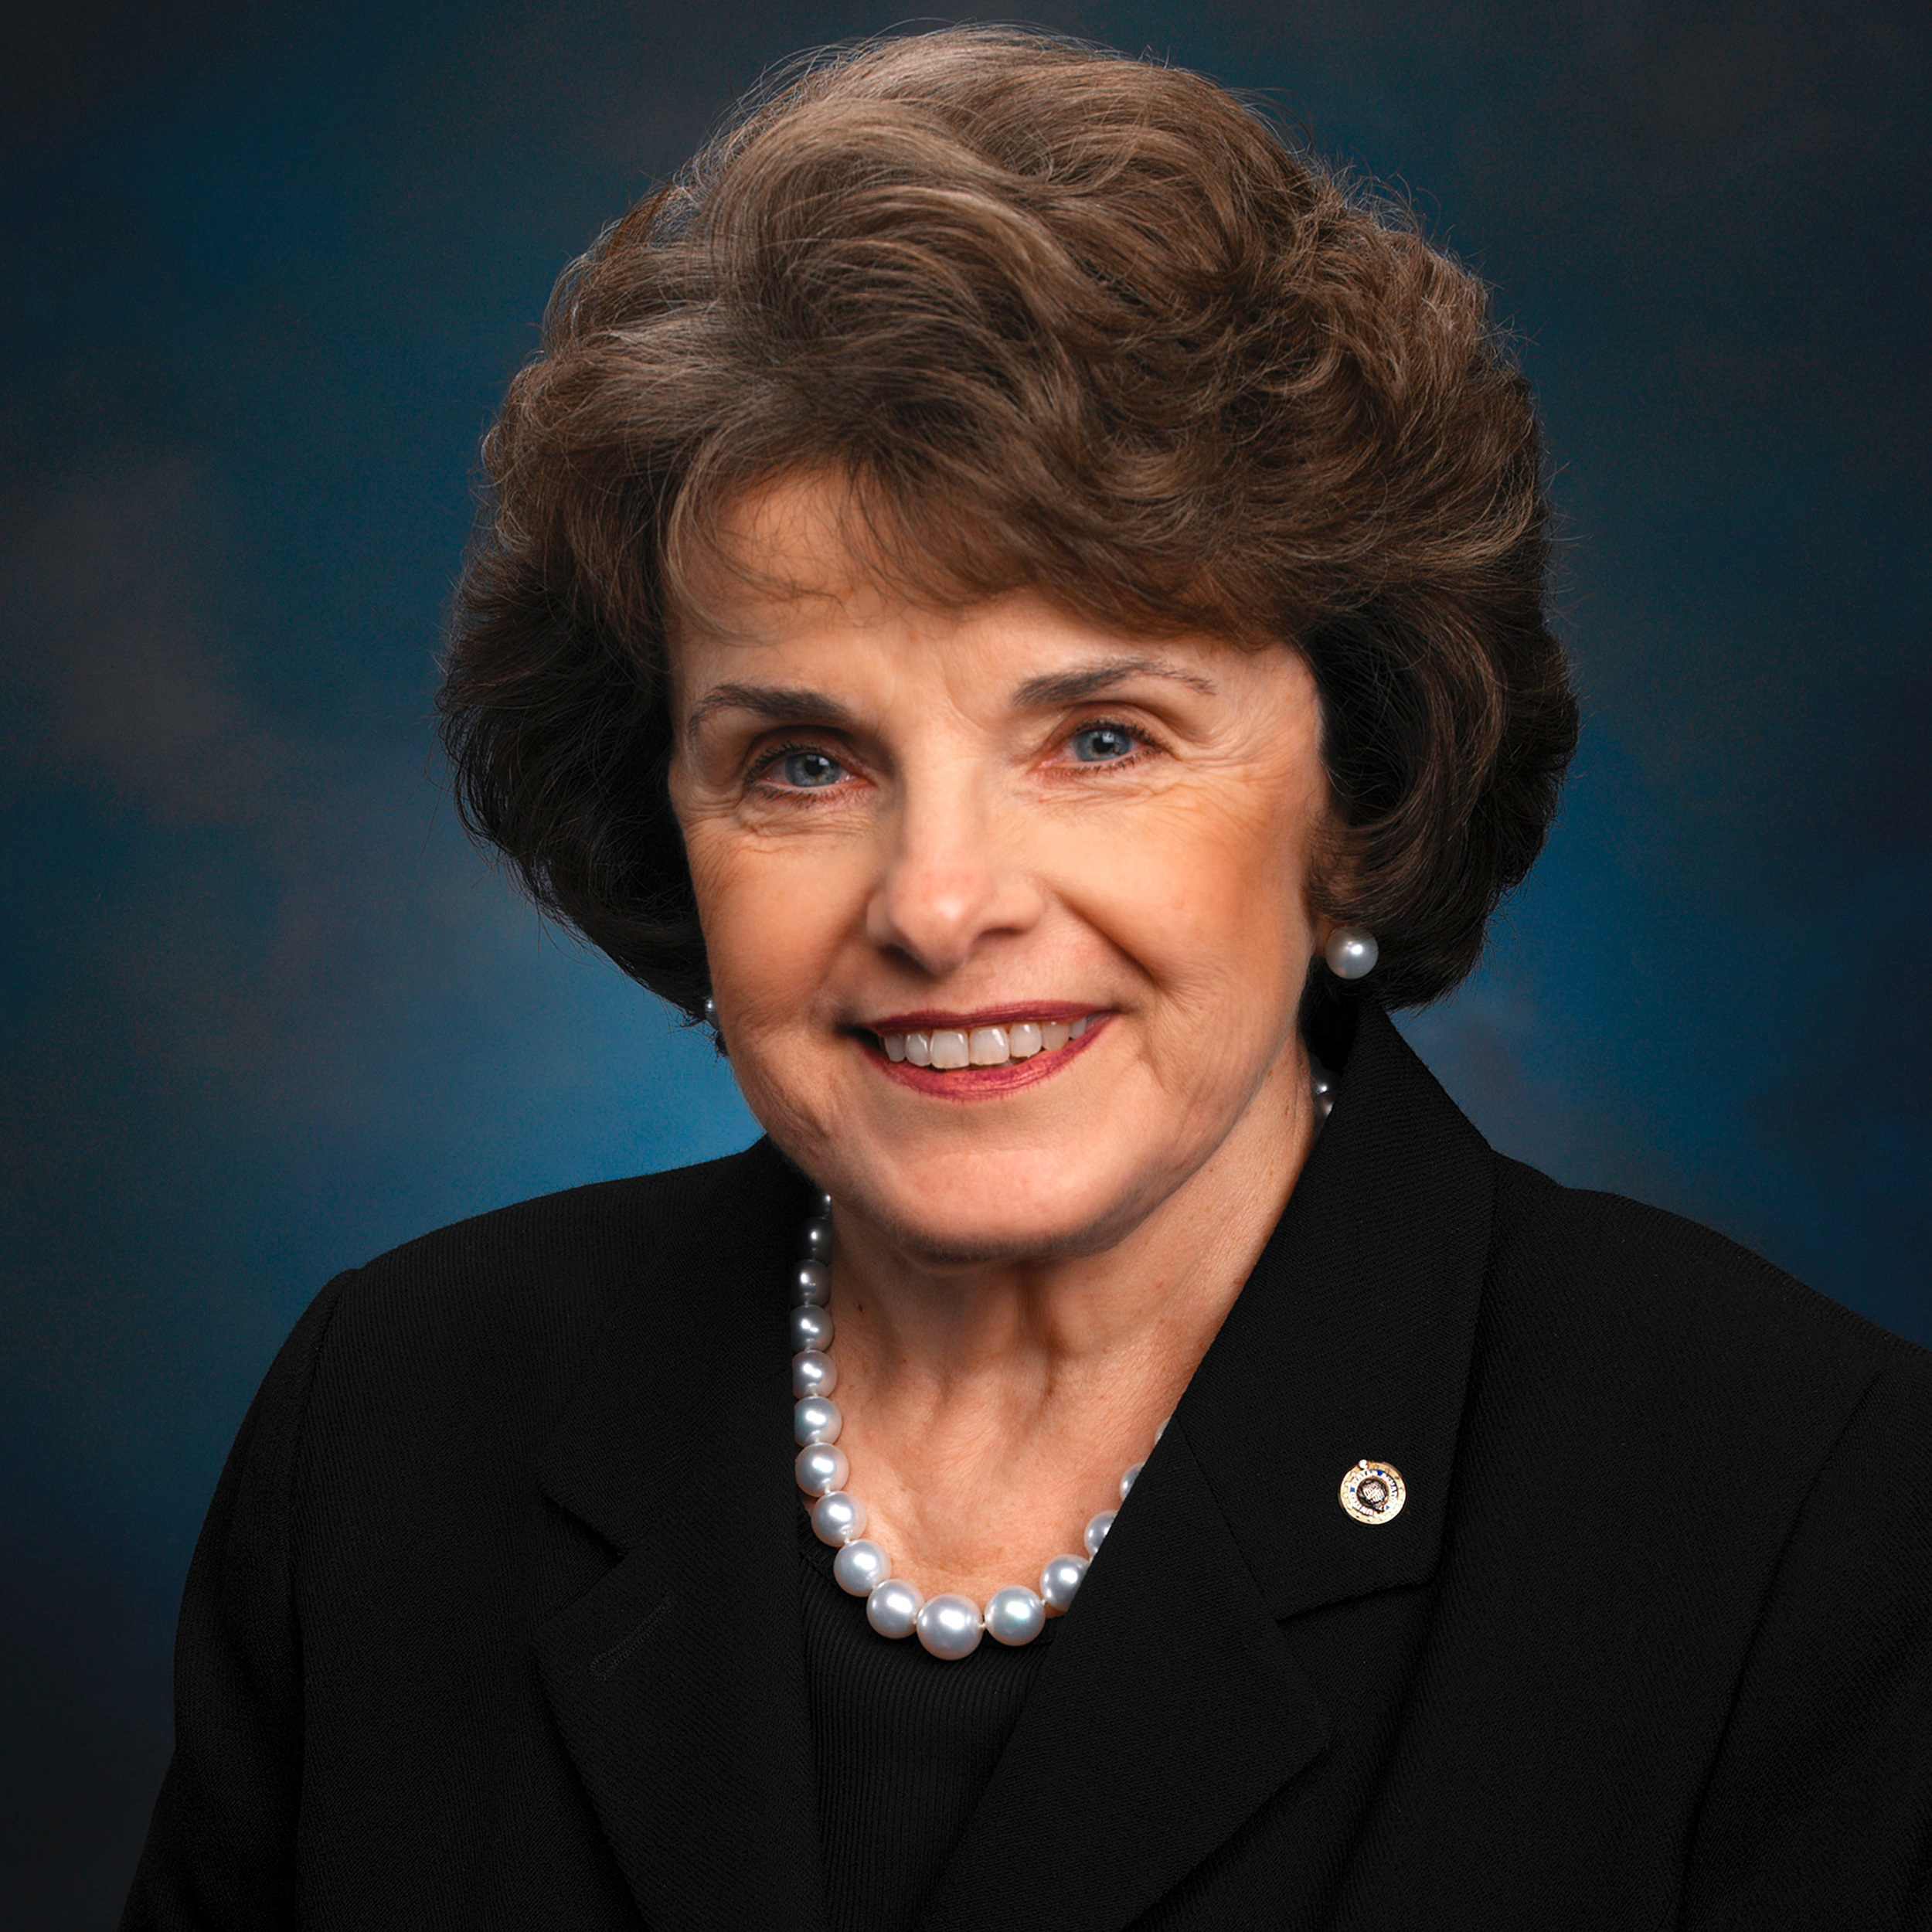 Sentor Dianne Feinstein - U.S. SenateLos Angeles Office:11111 Santa Monica Blvd., Suite 915Los Angeles, CA 90025Phone: (310) 914-7300http://feinstein.senate.gov